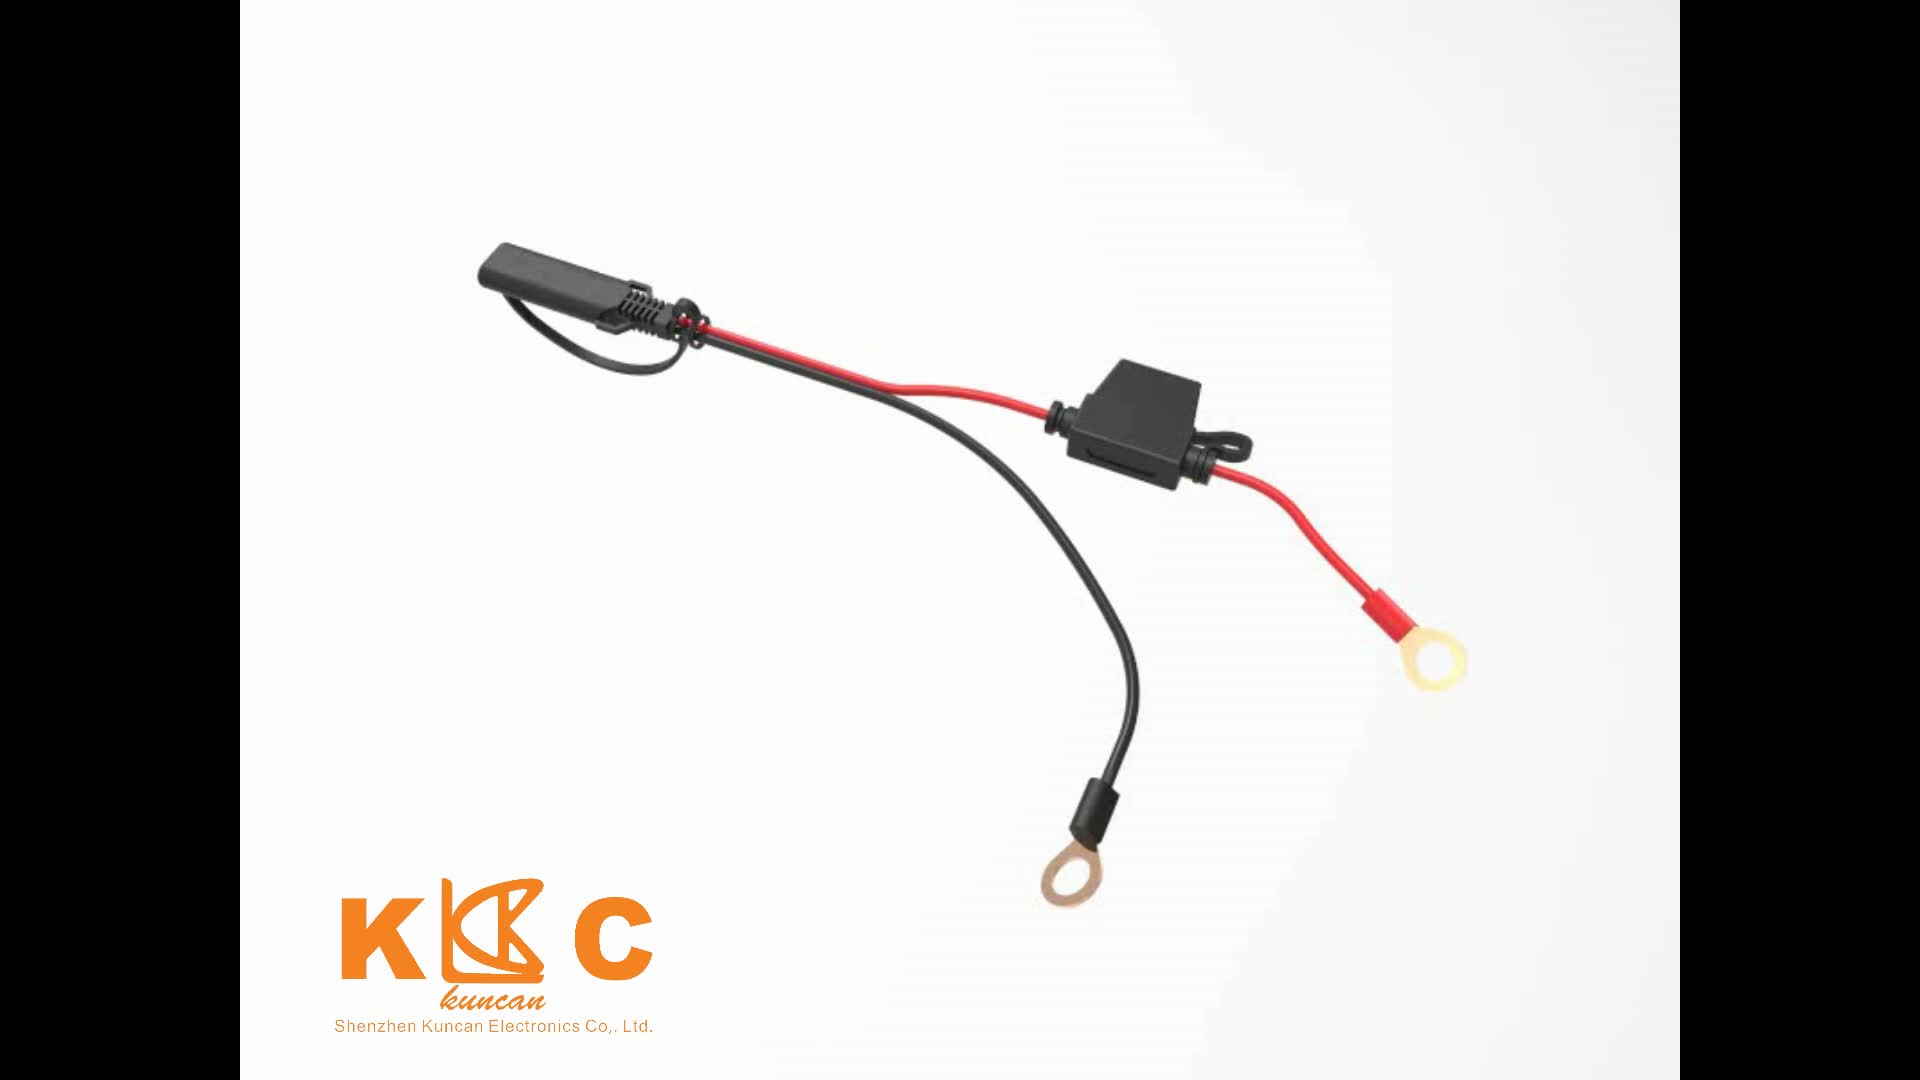 sae connector 7 5a power cable for car battery charging sae to ring terminal